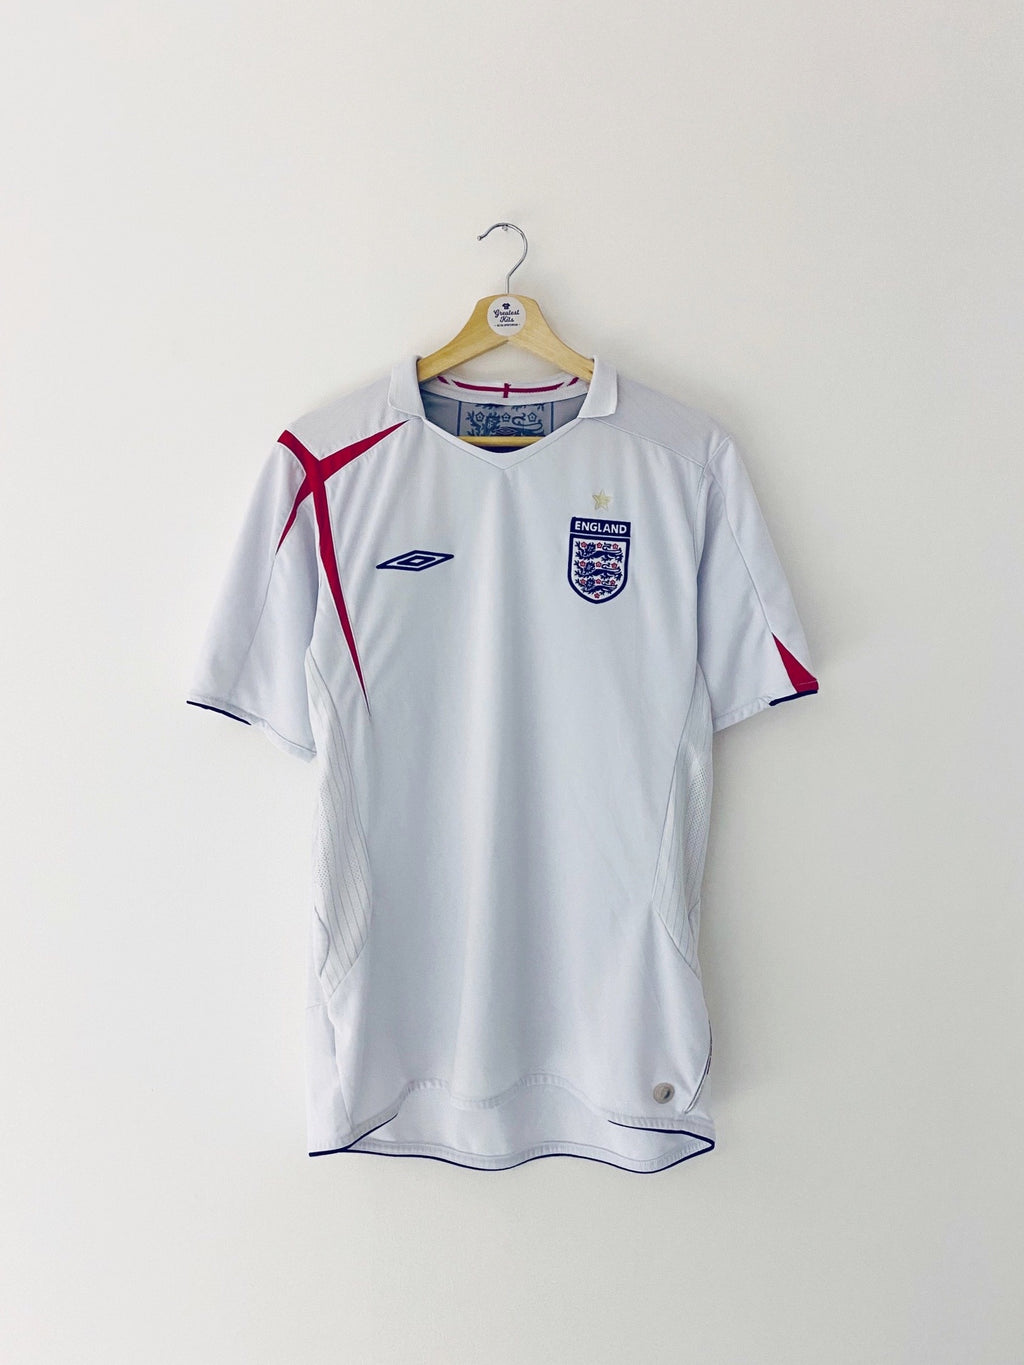 2005/07 England Home Shirt (L) 6.5/10